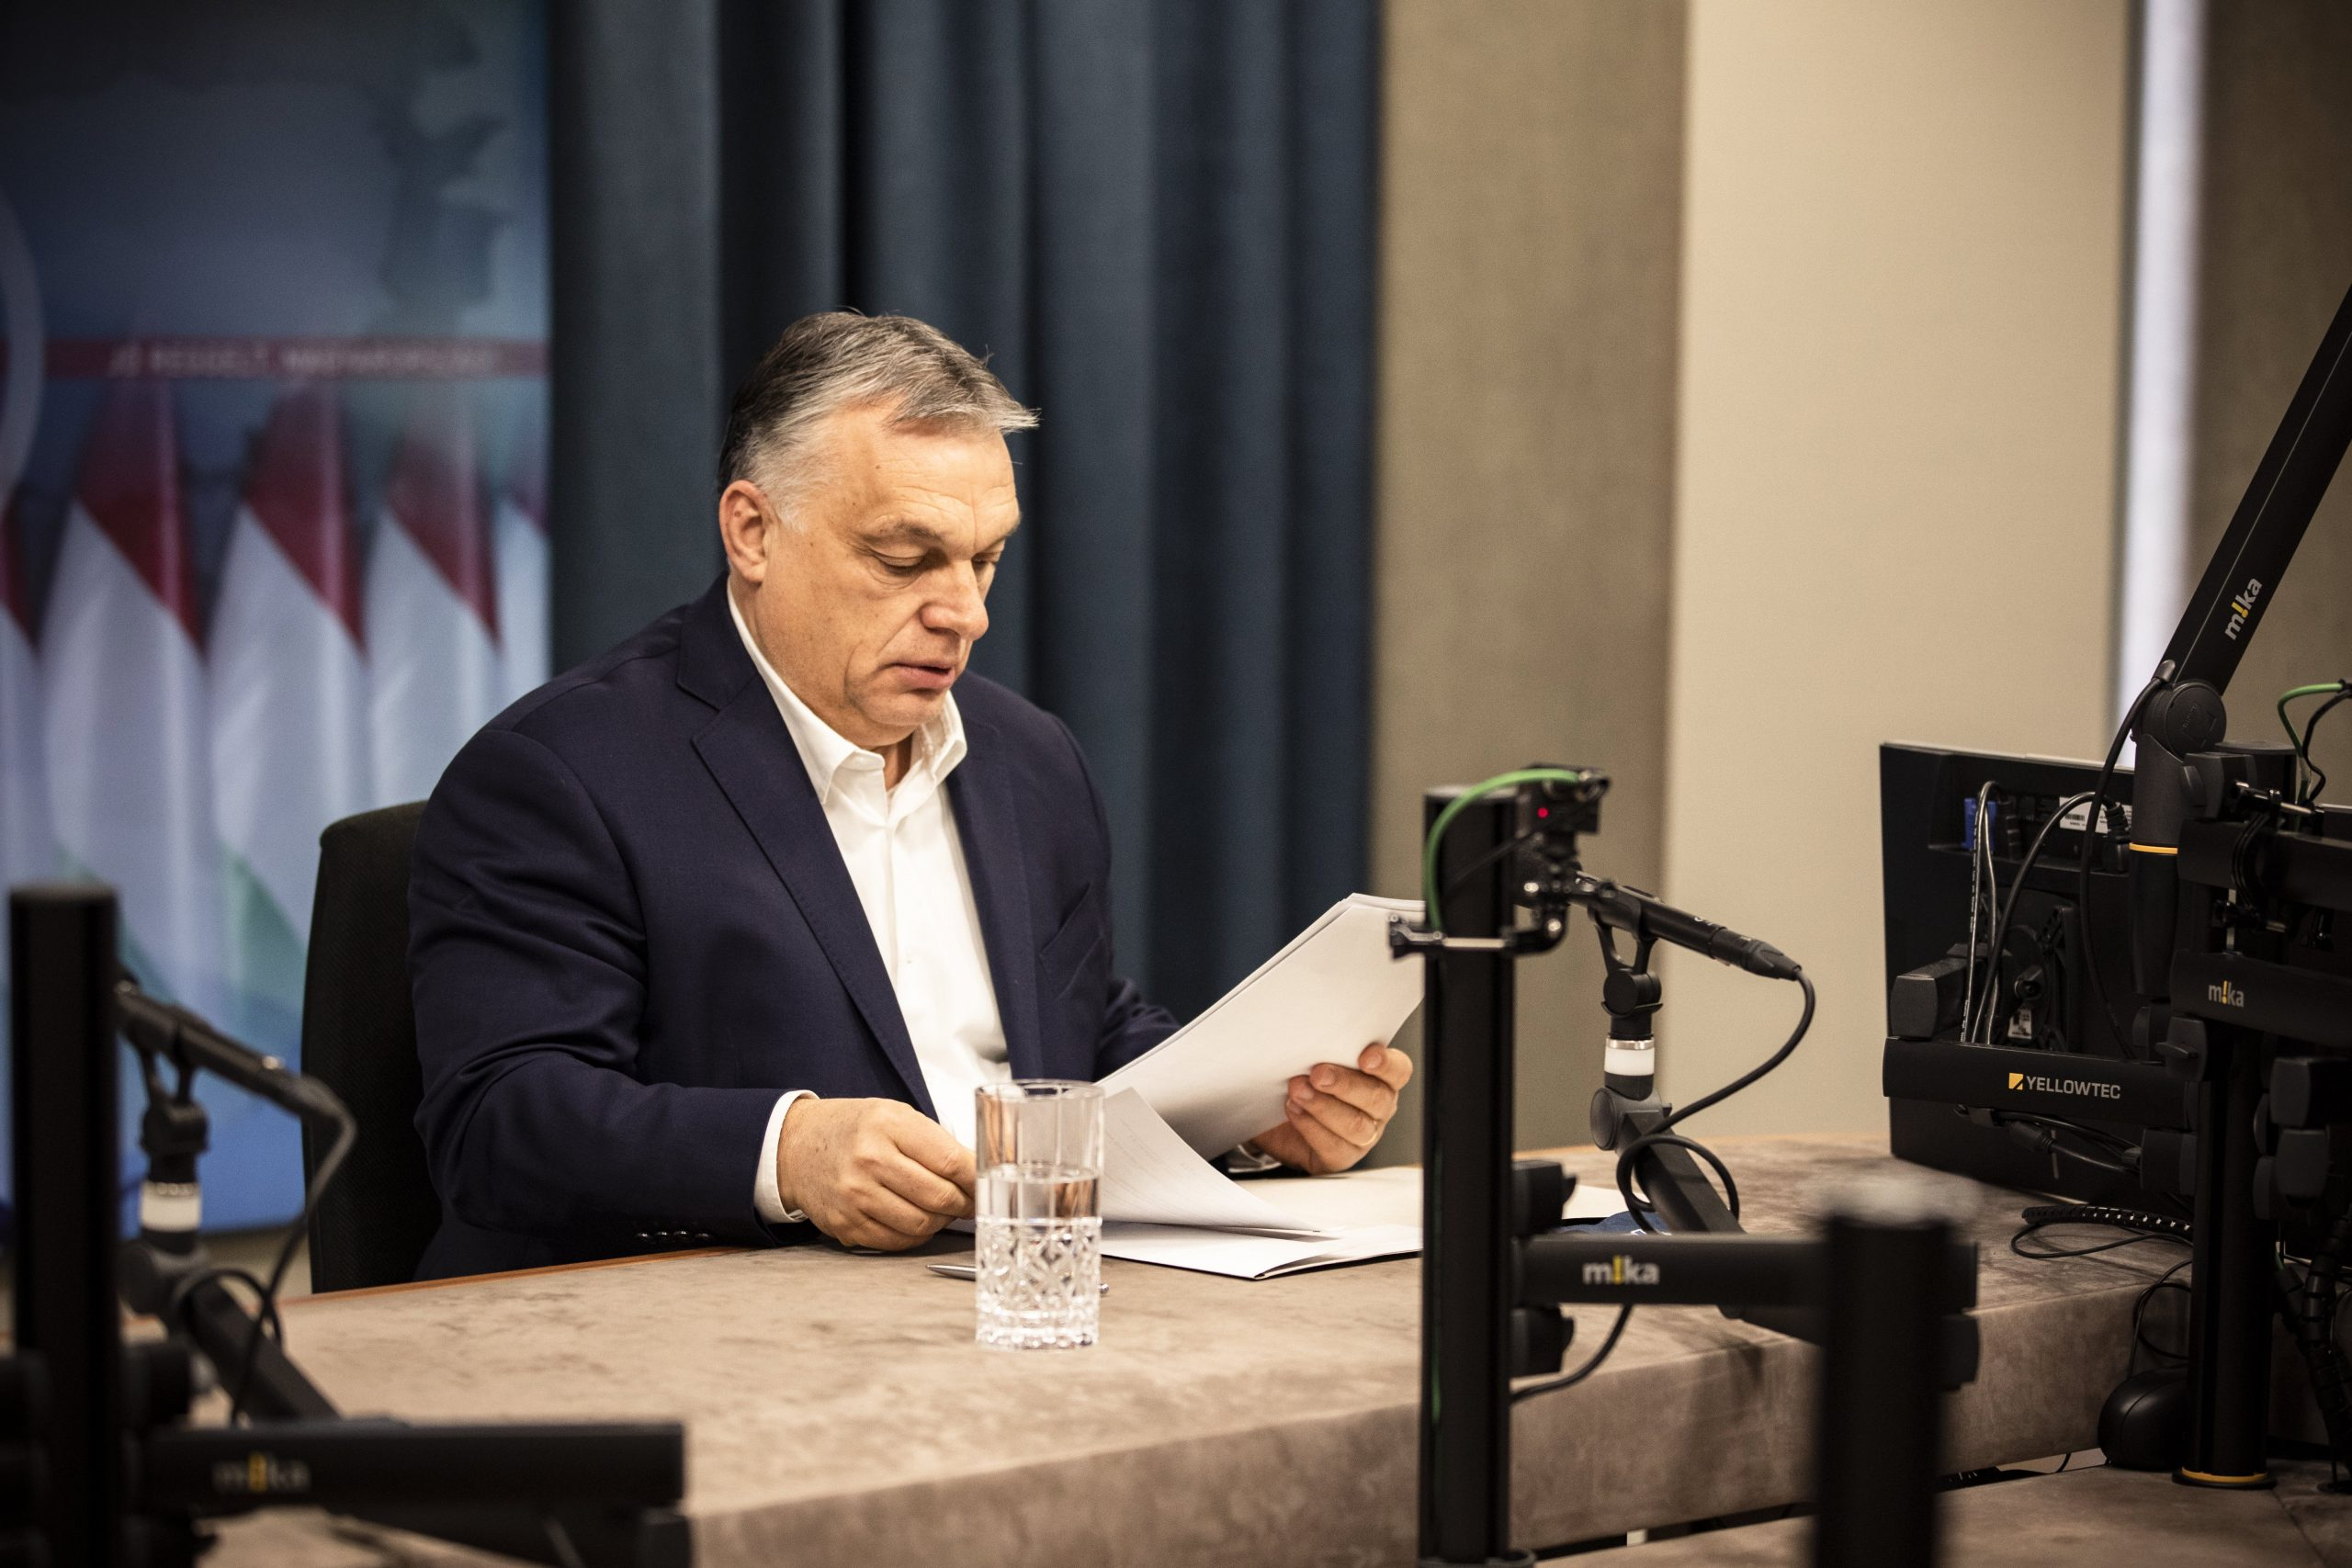 PM Orbán: Any Further Covid Lockdowns would be Unfair to Vaccinated People